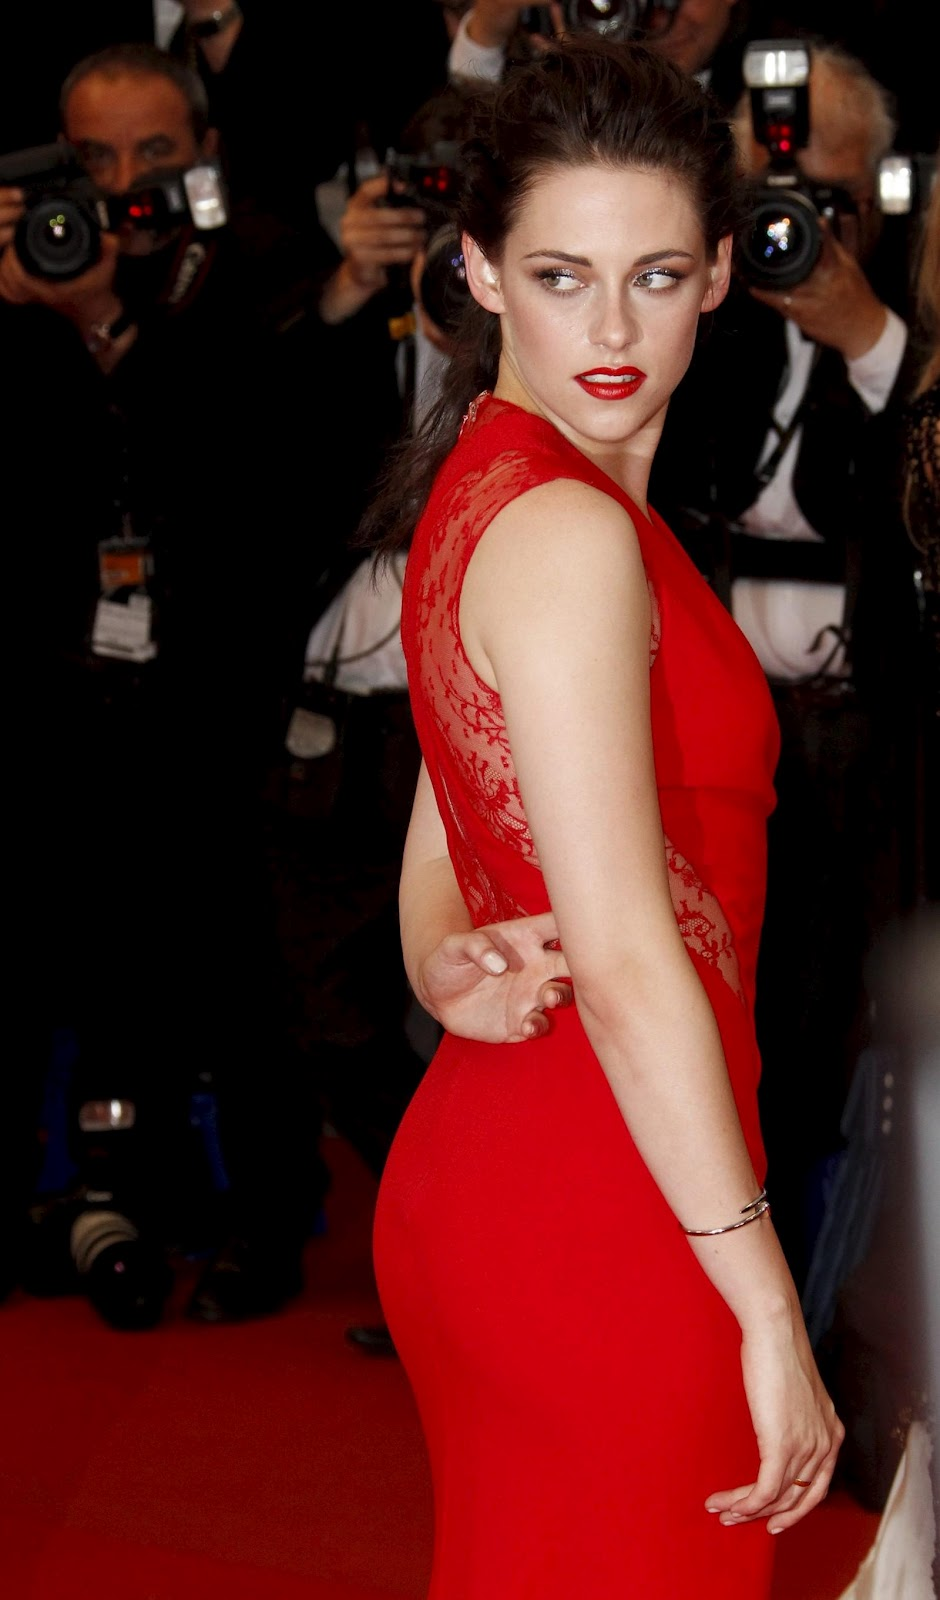 Hrithik Hd Wallpaper Kristen Stewart In Red Gown For Cannes Film Festival